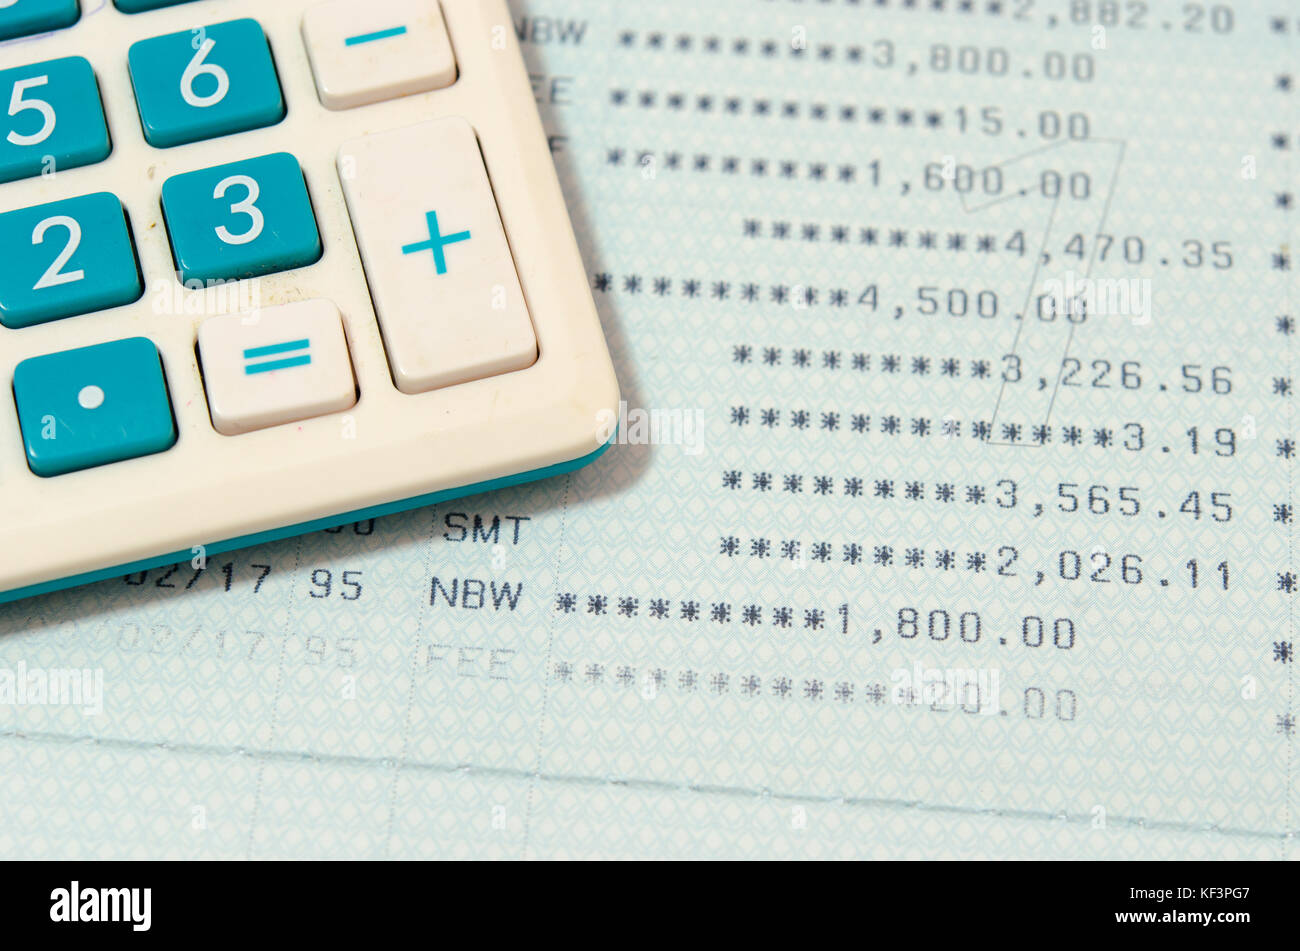 Saving Account Book Bank.Business Finance with calculator Stock ...